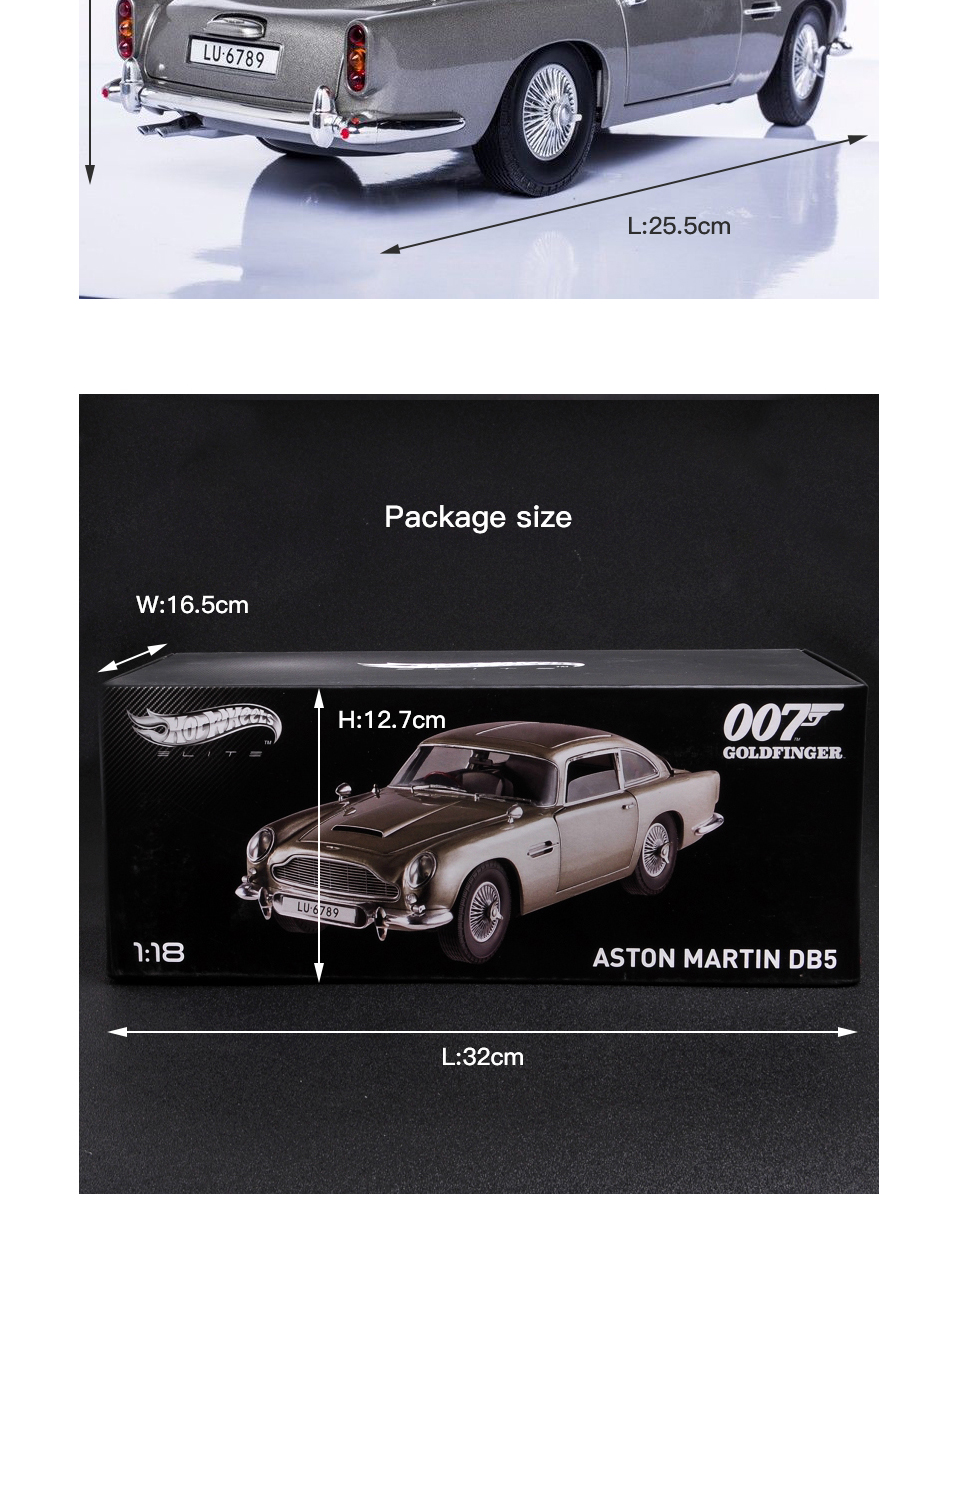 1 18 scale car models 2-4 Years james bond 007 collectables Aston Matin DB5 Diecasts & Toy Vehicles Model Toys For Gifts (6)